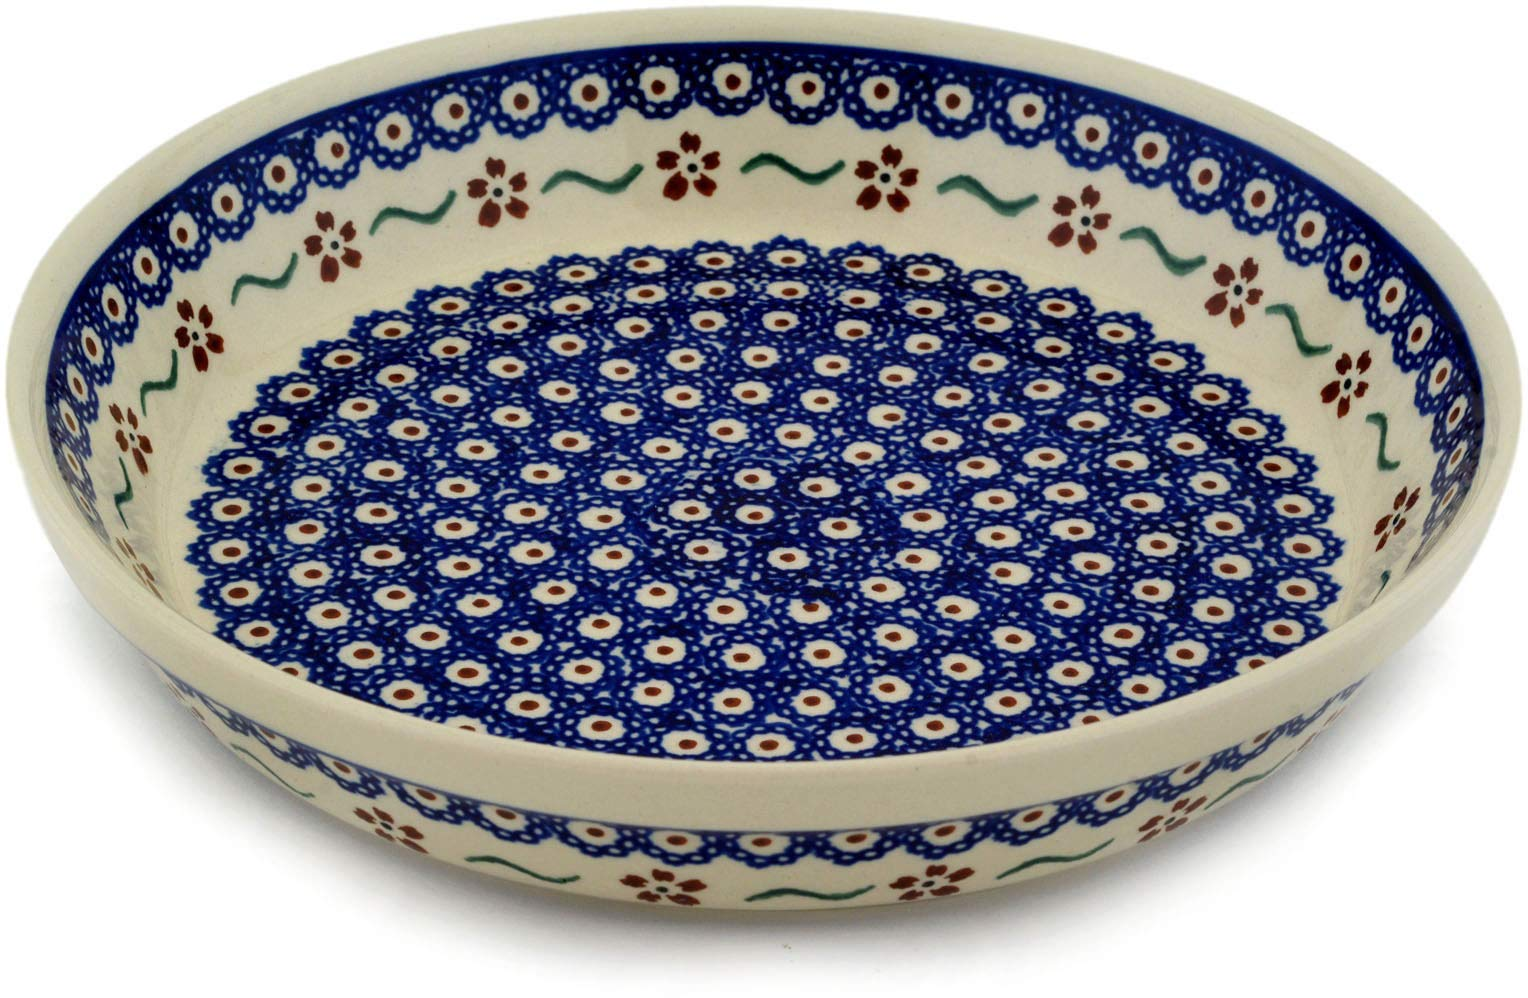 Polish Pottery 9½-inch Pie Dish (Sweet Red Flower Theme) + Certificate of Authenticity